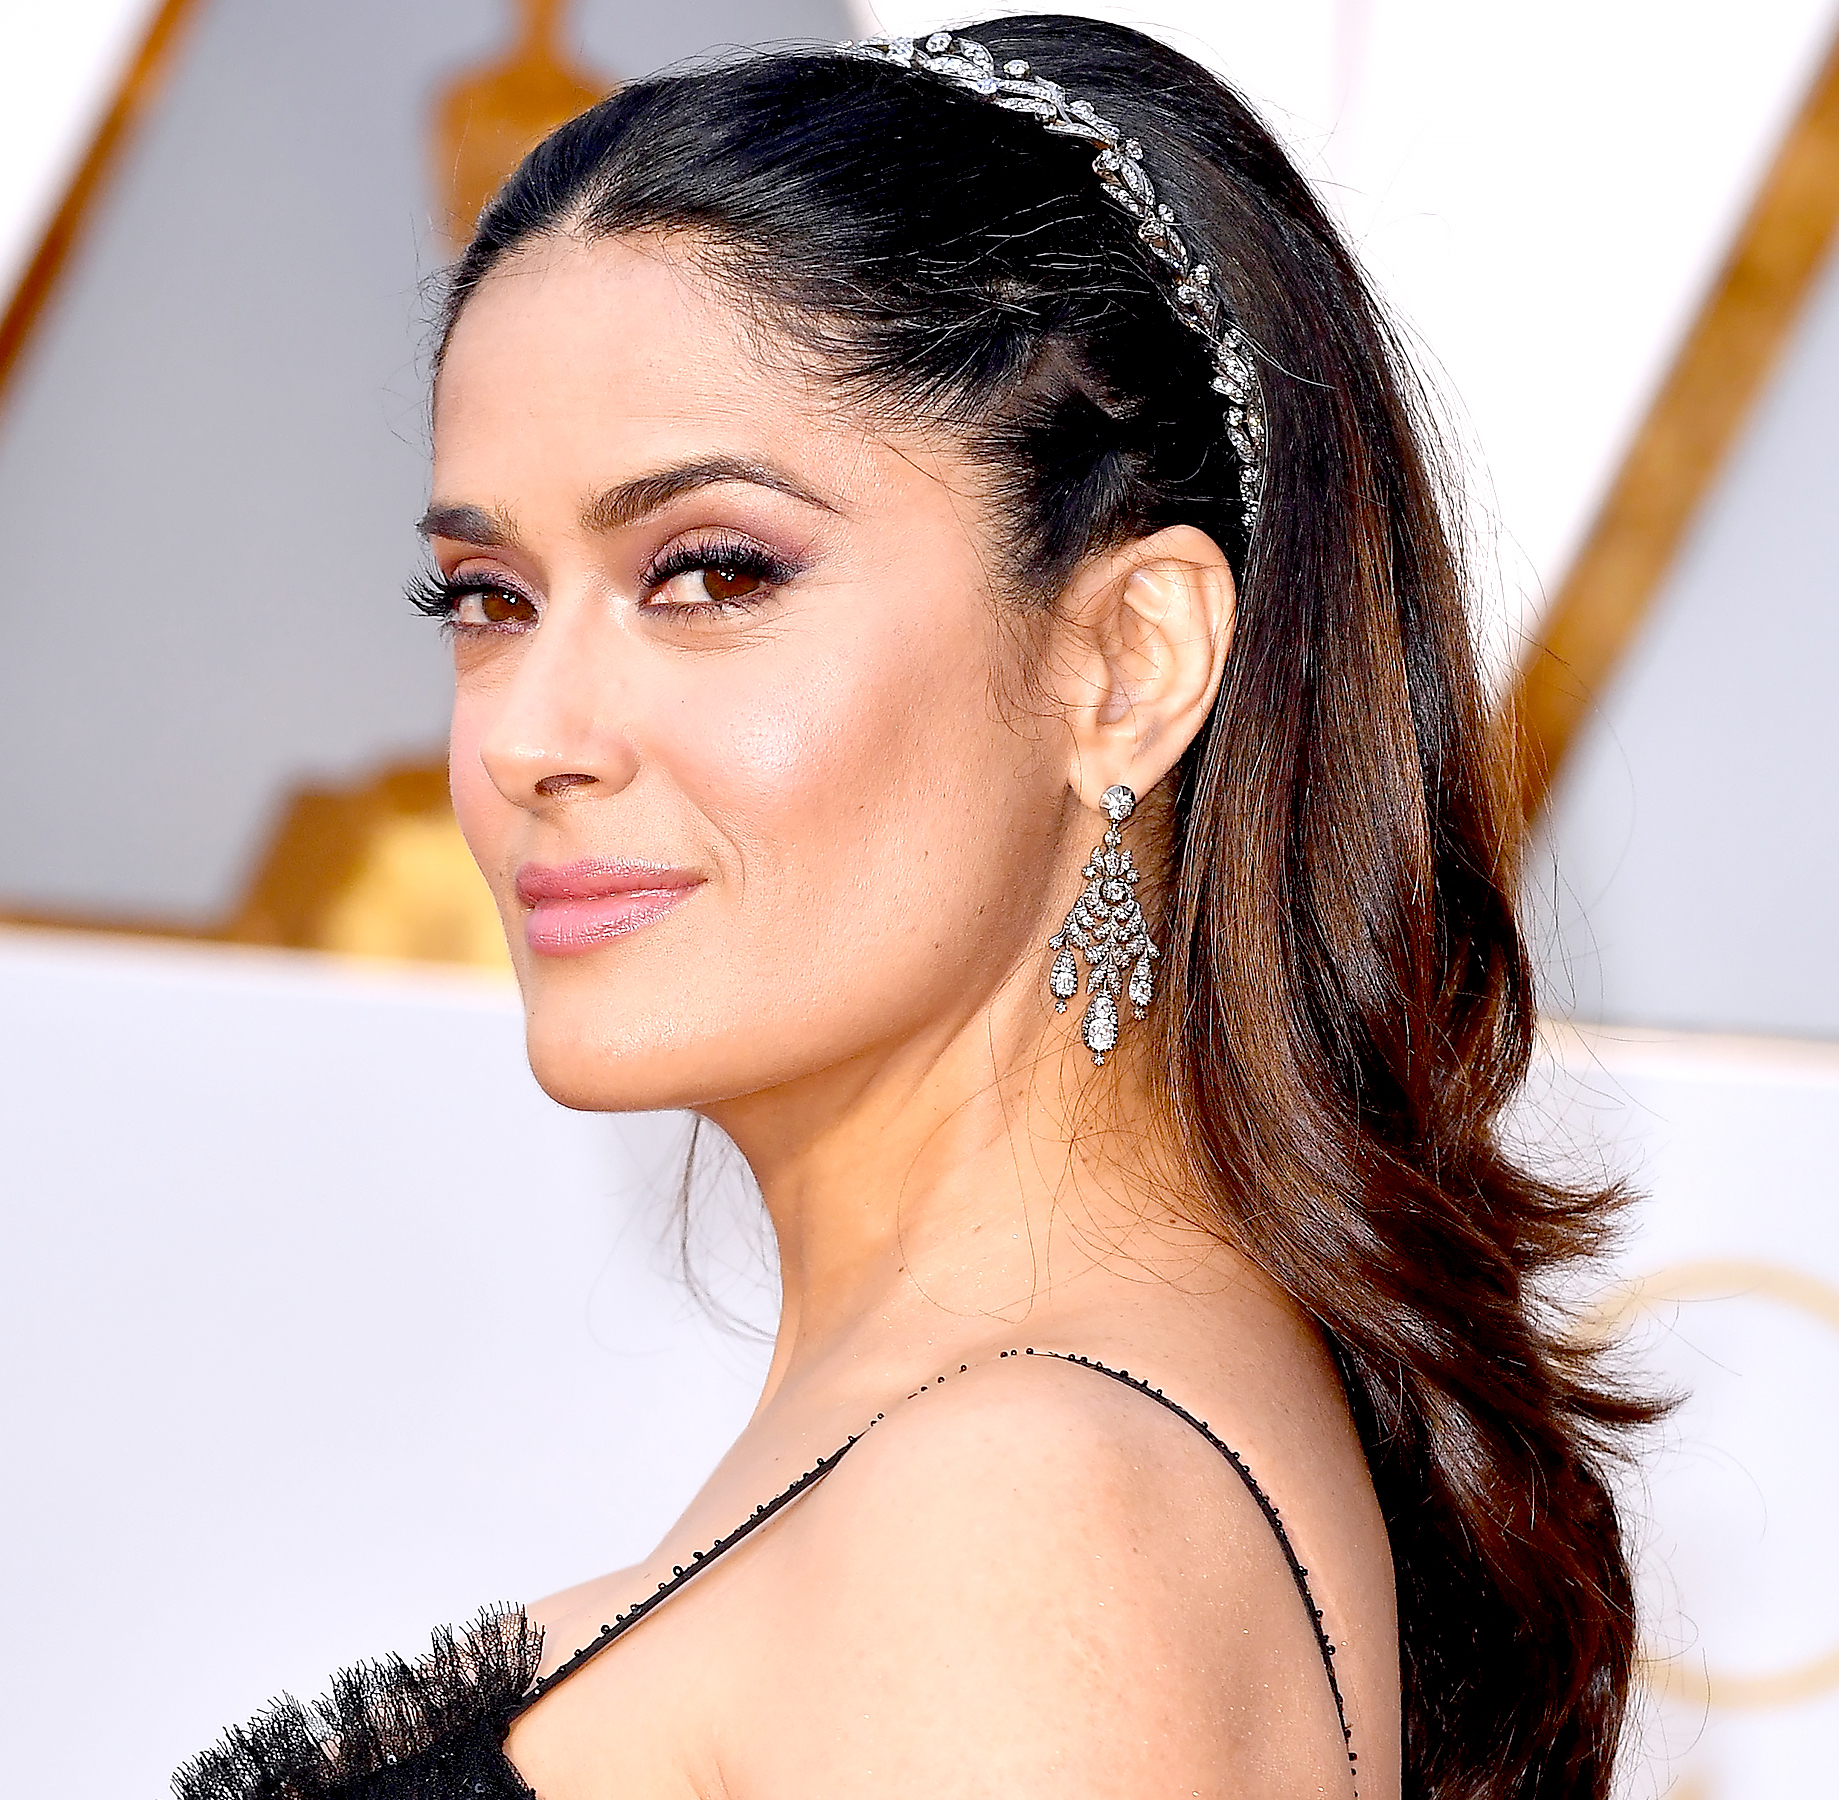 Salma Hayek attends the 89th Annual Academy Awards at Hollywood & Highland Center on February 26, 2017 in Hollywood, California.